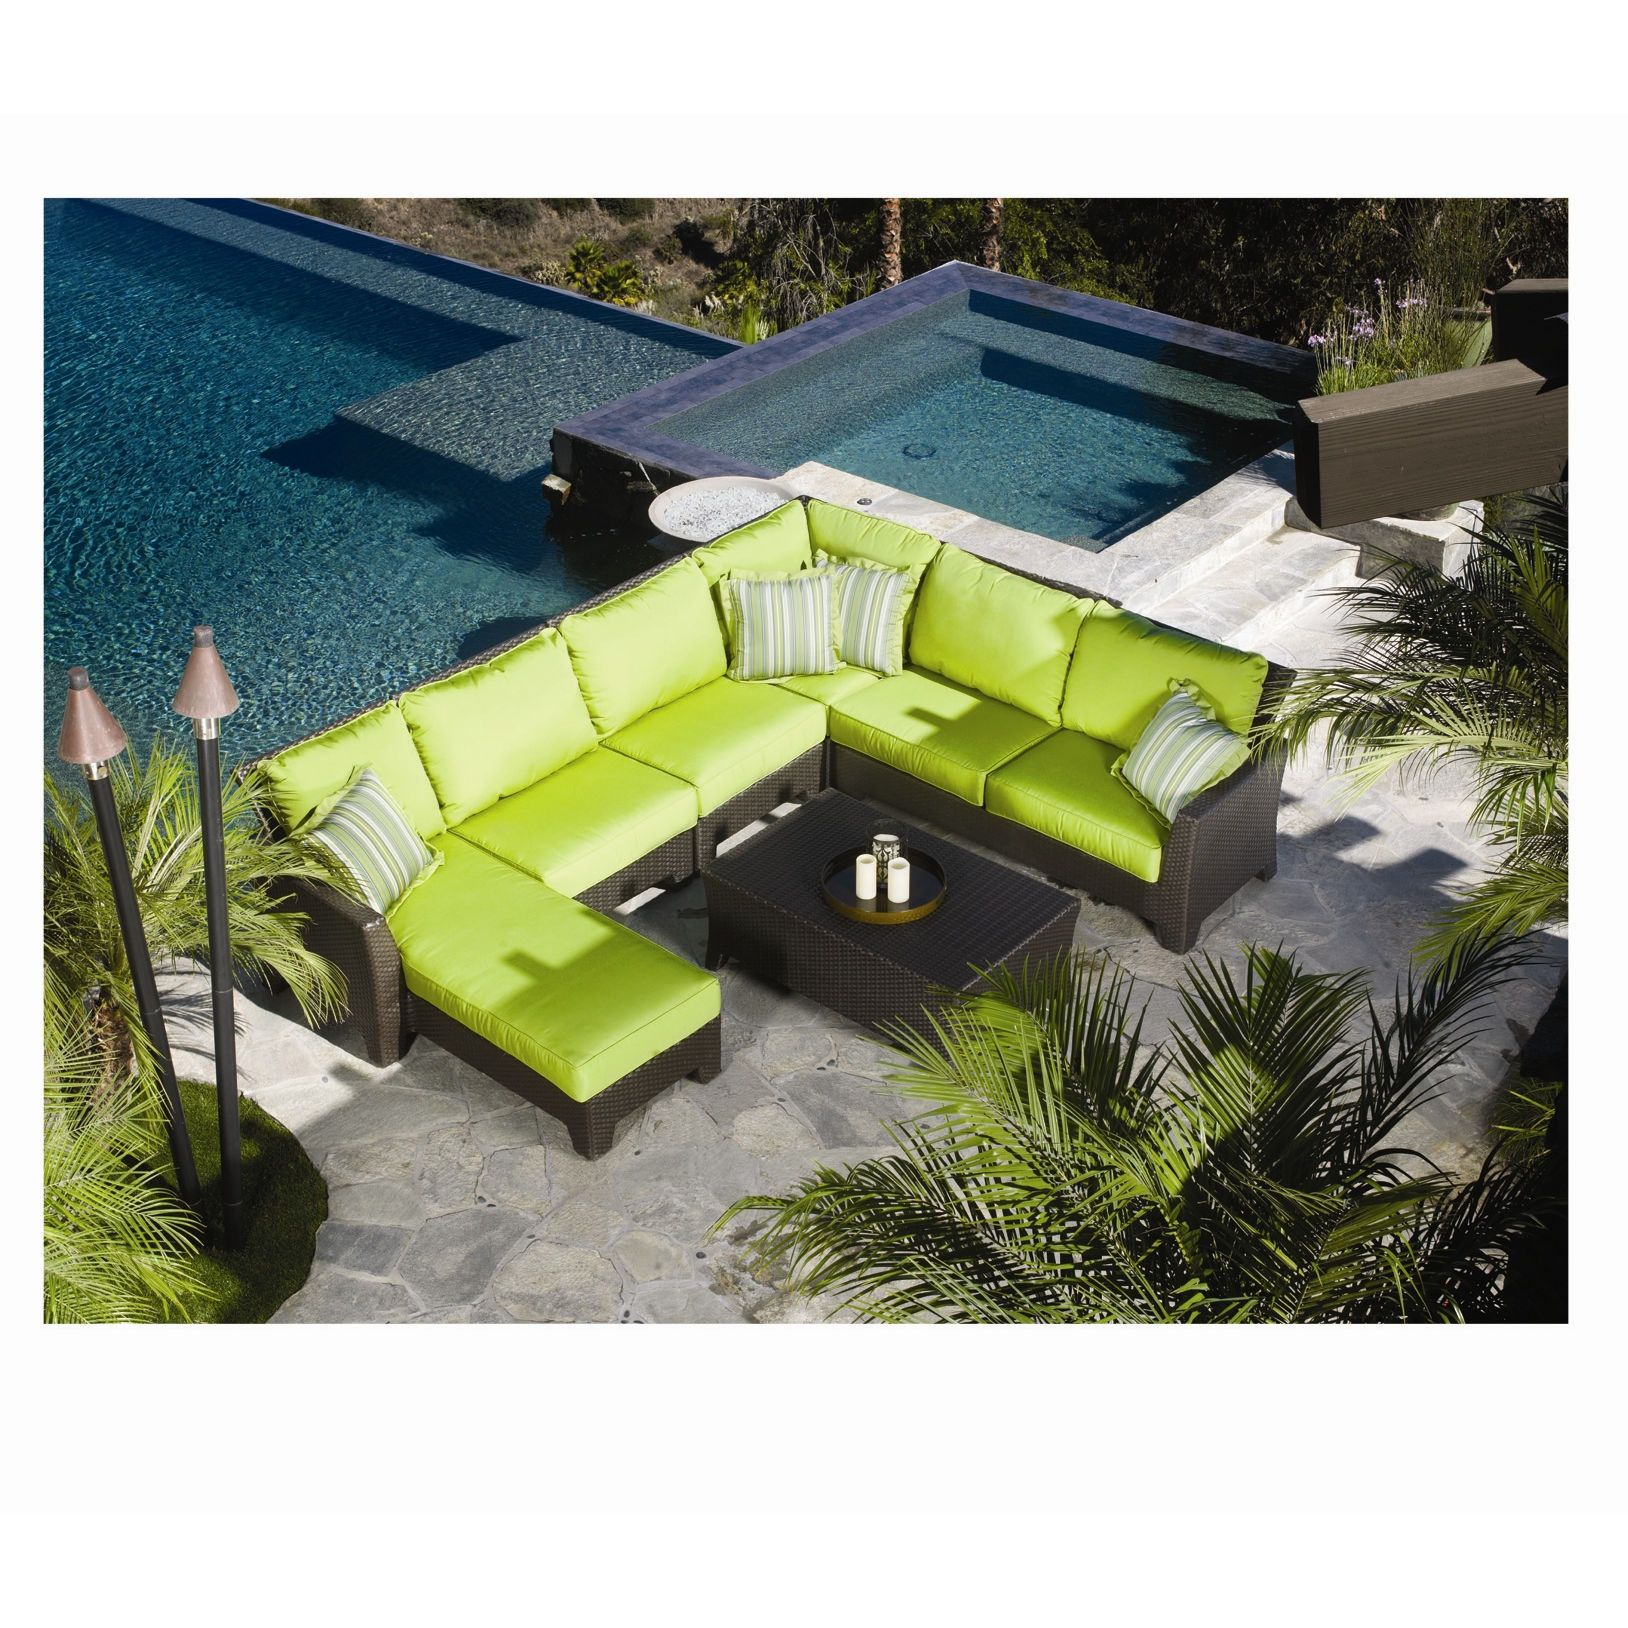 i love an outdoor space modern & fortable i d change the